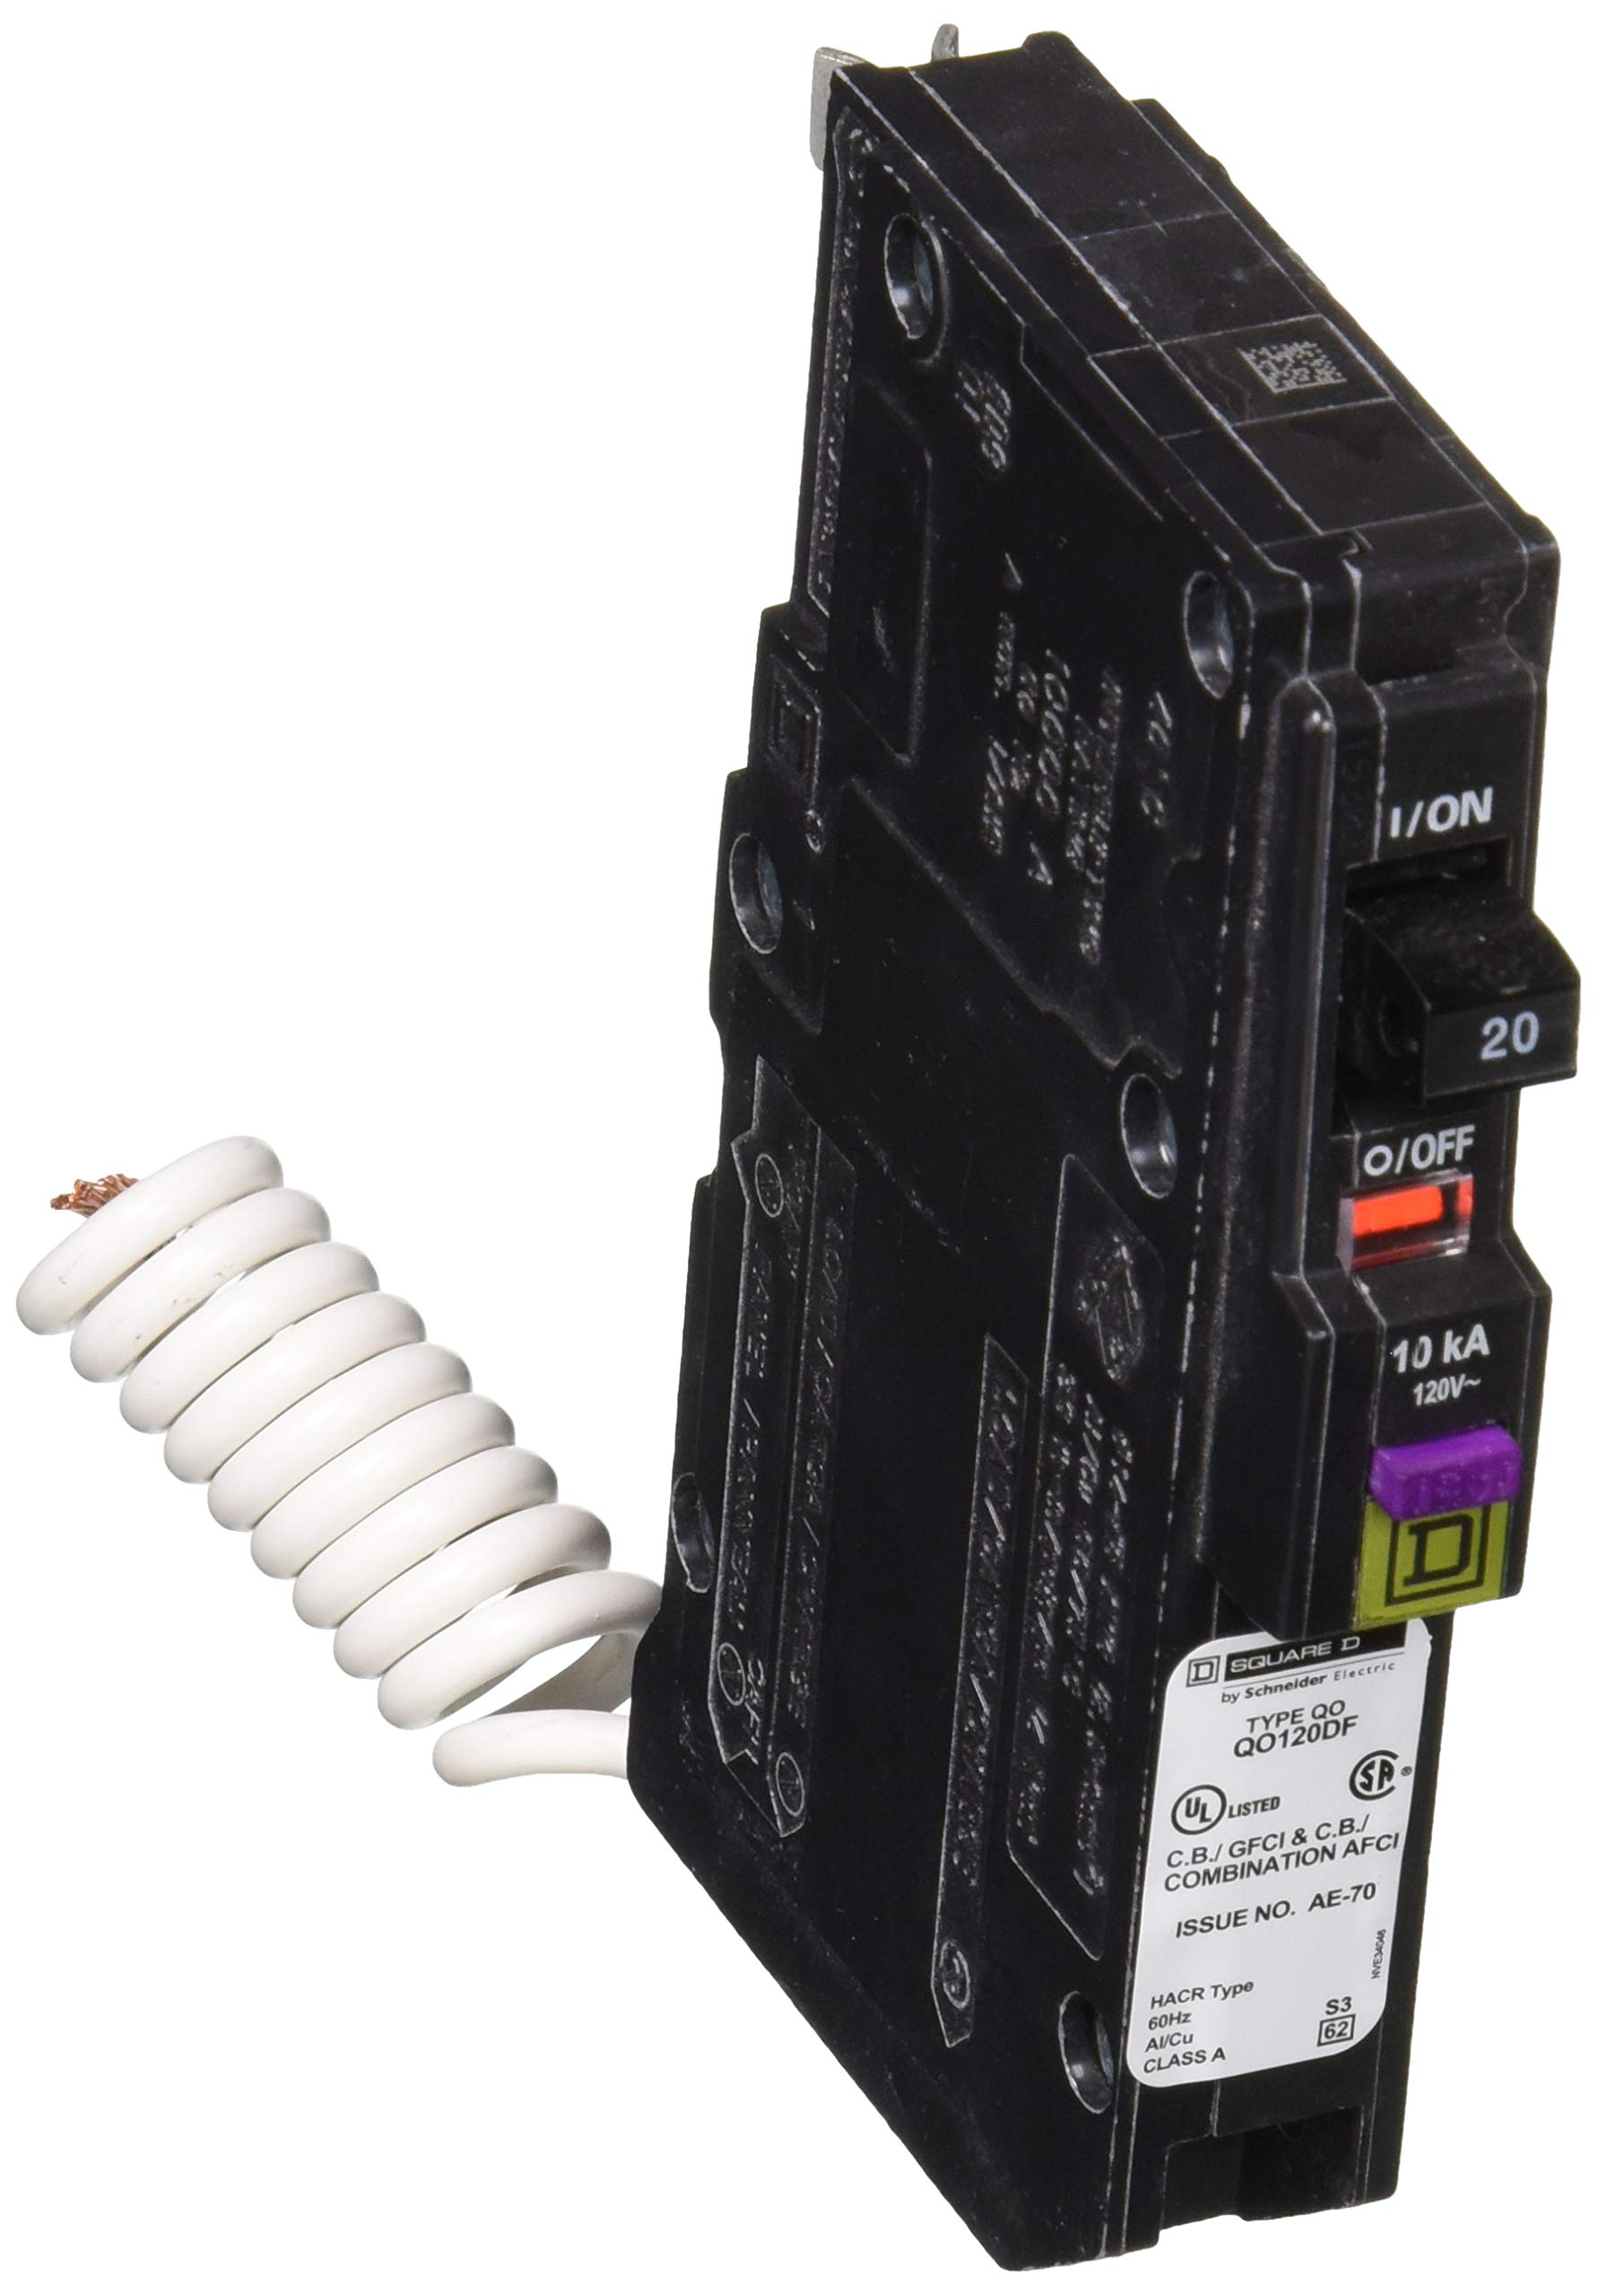 2 Pole 120//240V Ground Fault Circuit Interrupter with Self Test and Lockout Feature Siemens QF260A 60 Amp